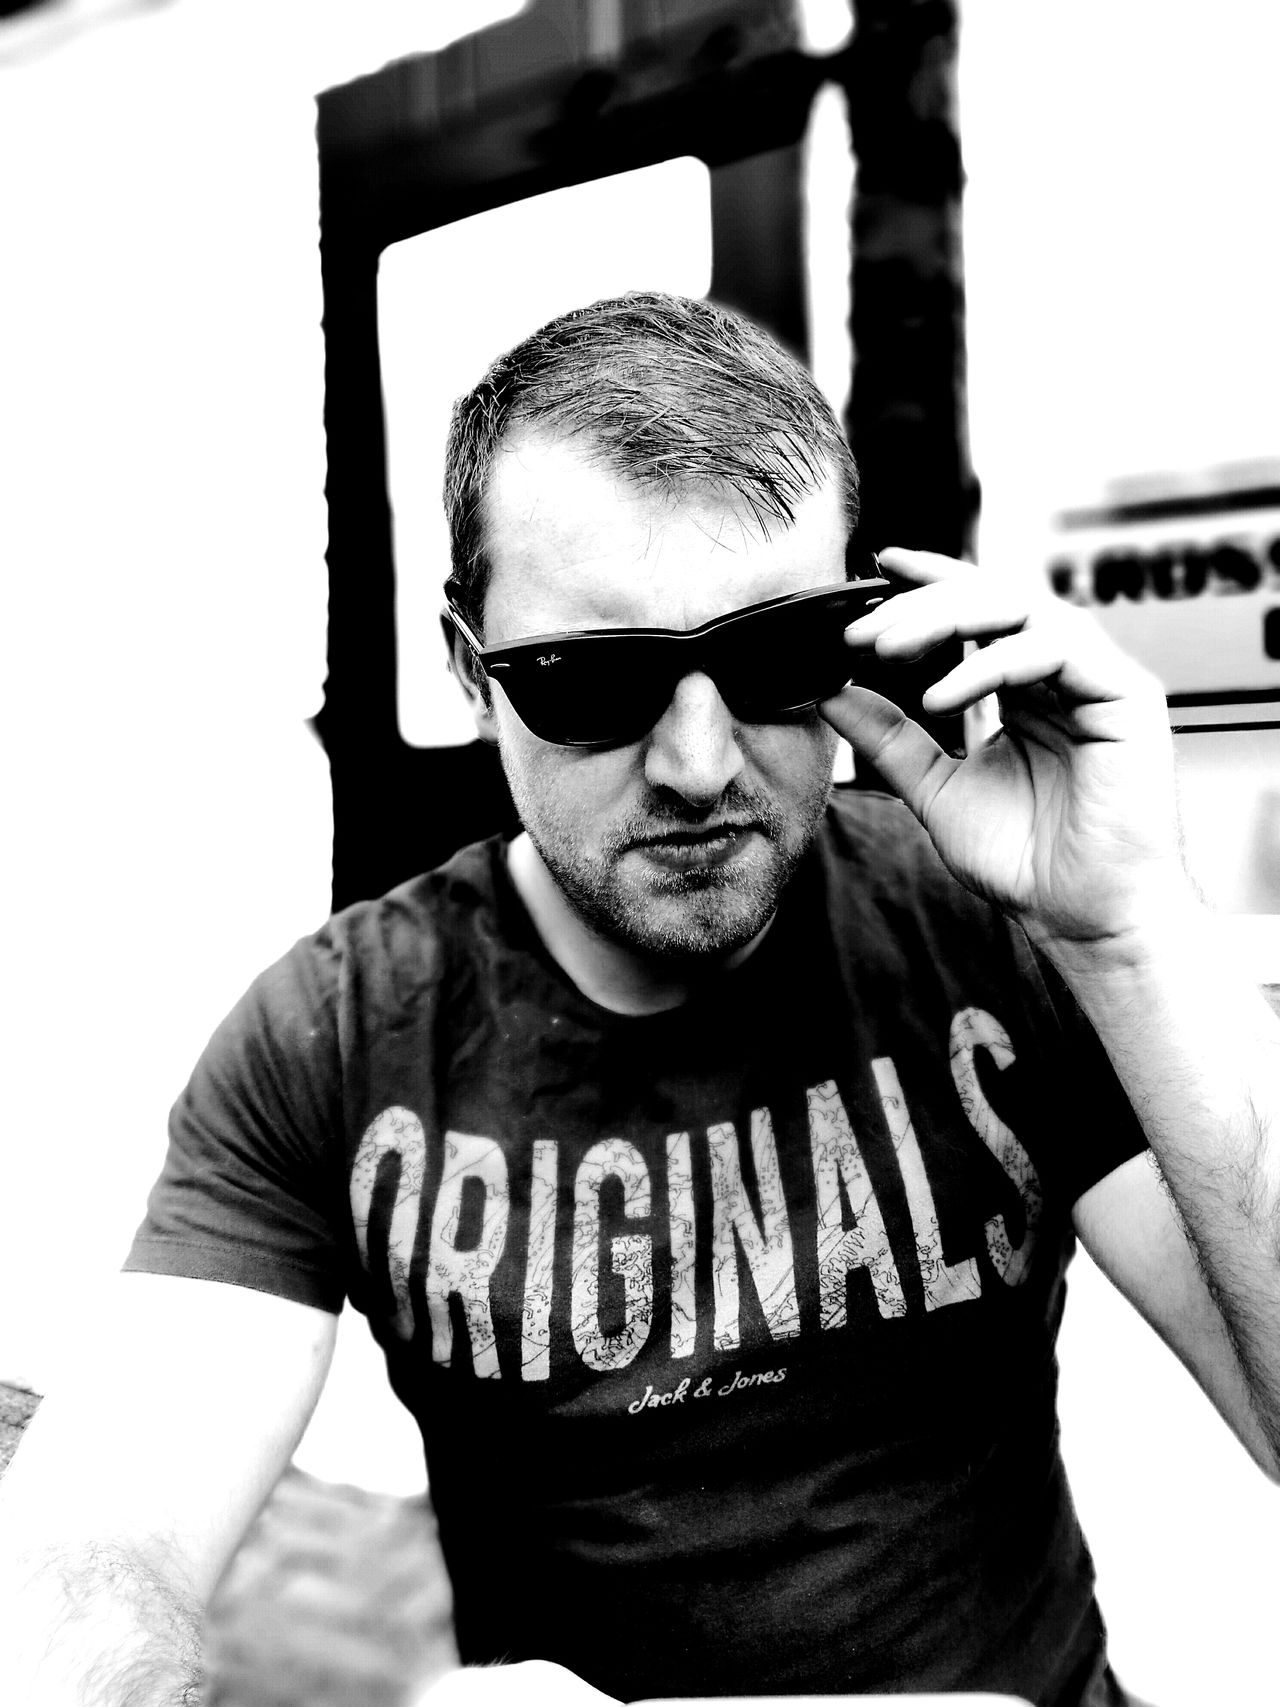 Looking At Camera Portrait Mid Adult Sunglasses One Person Front View Day Adult Outdoors Beer Garden Black And White Chilling Posing Summertime Pub Men Serious Adjusting Thinking Cool The Portraitist - 2017 EyeEm Awards